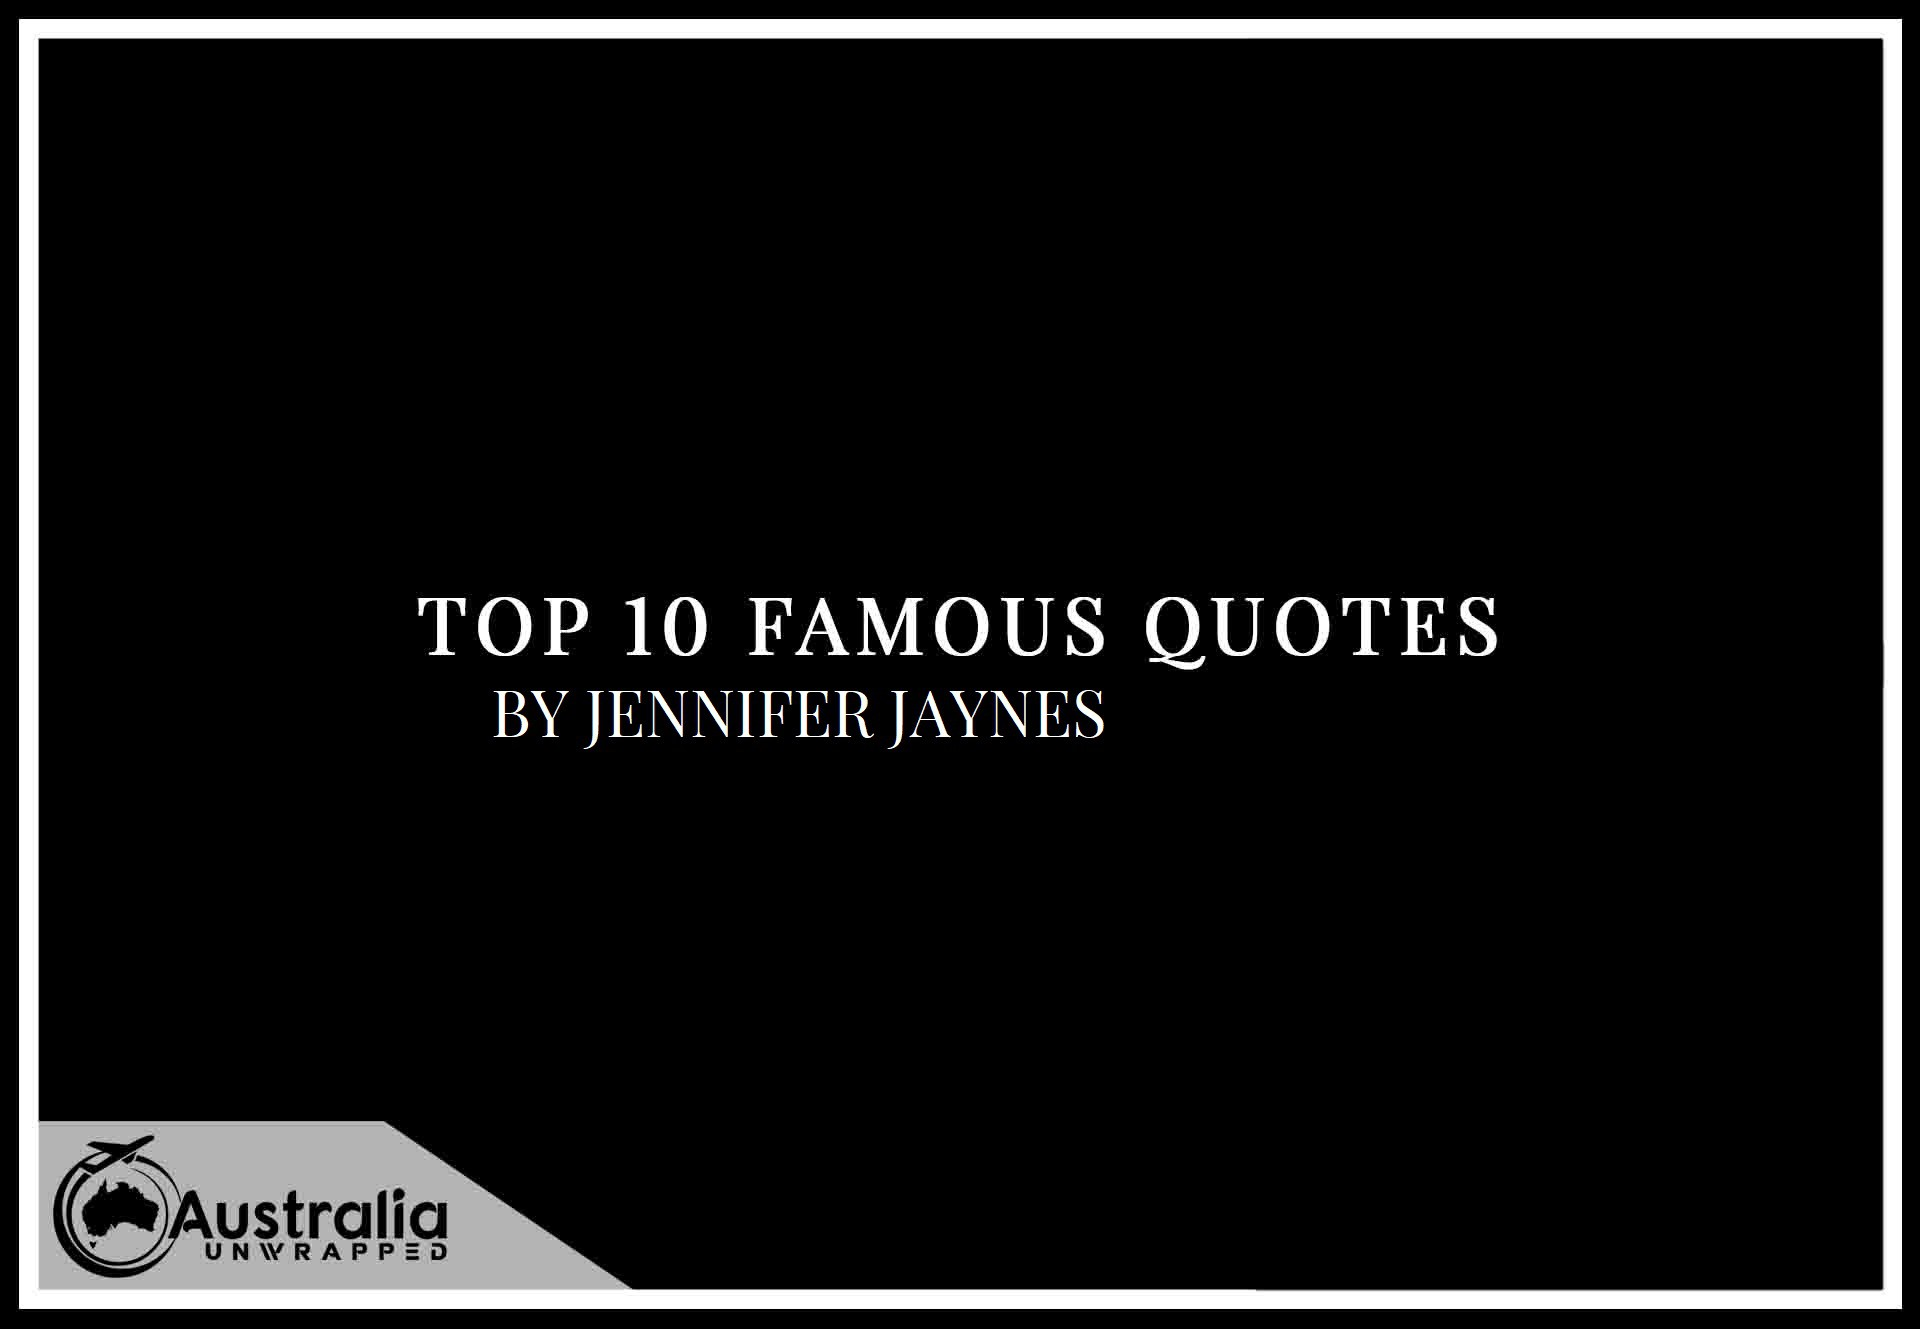 Top 10 Famous Quotes by Author Jennifer Minar-Jaynes